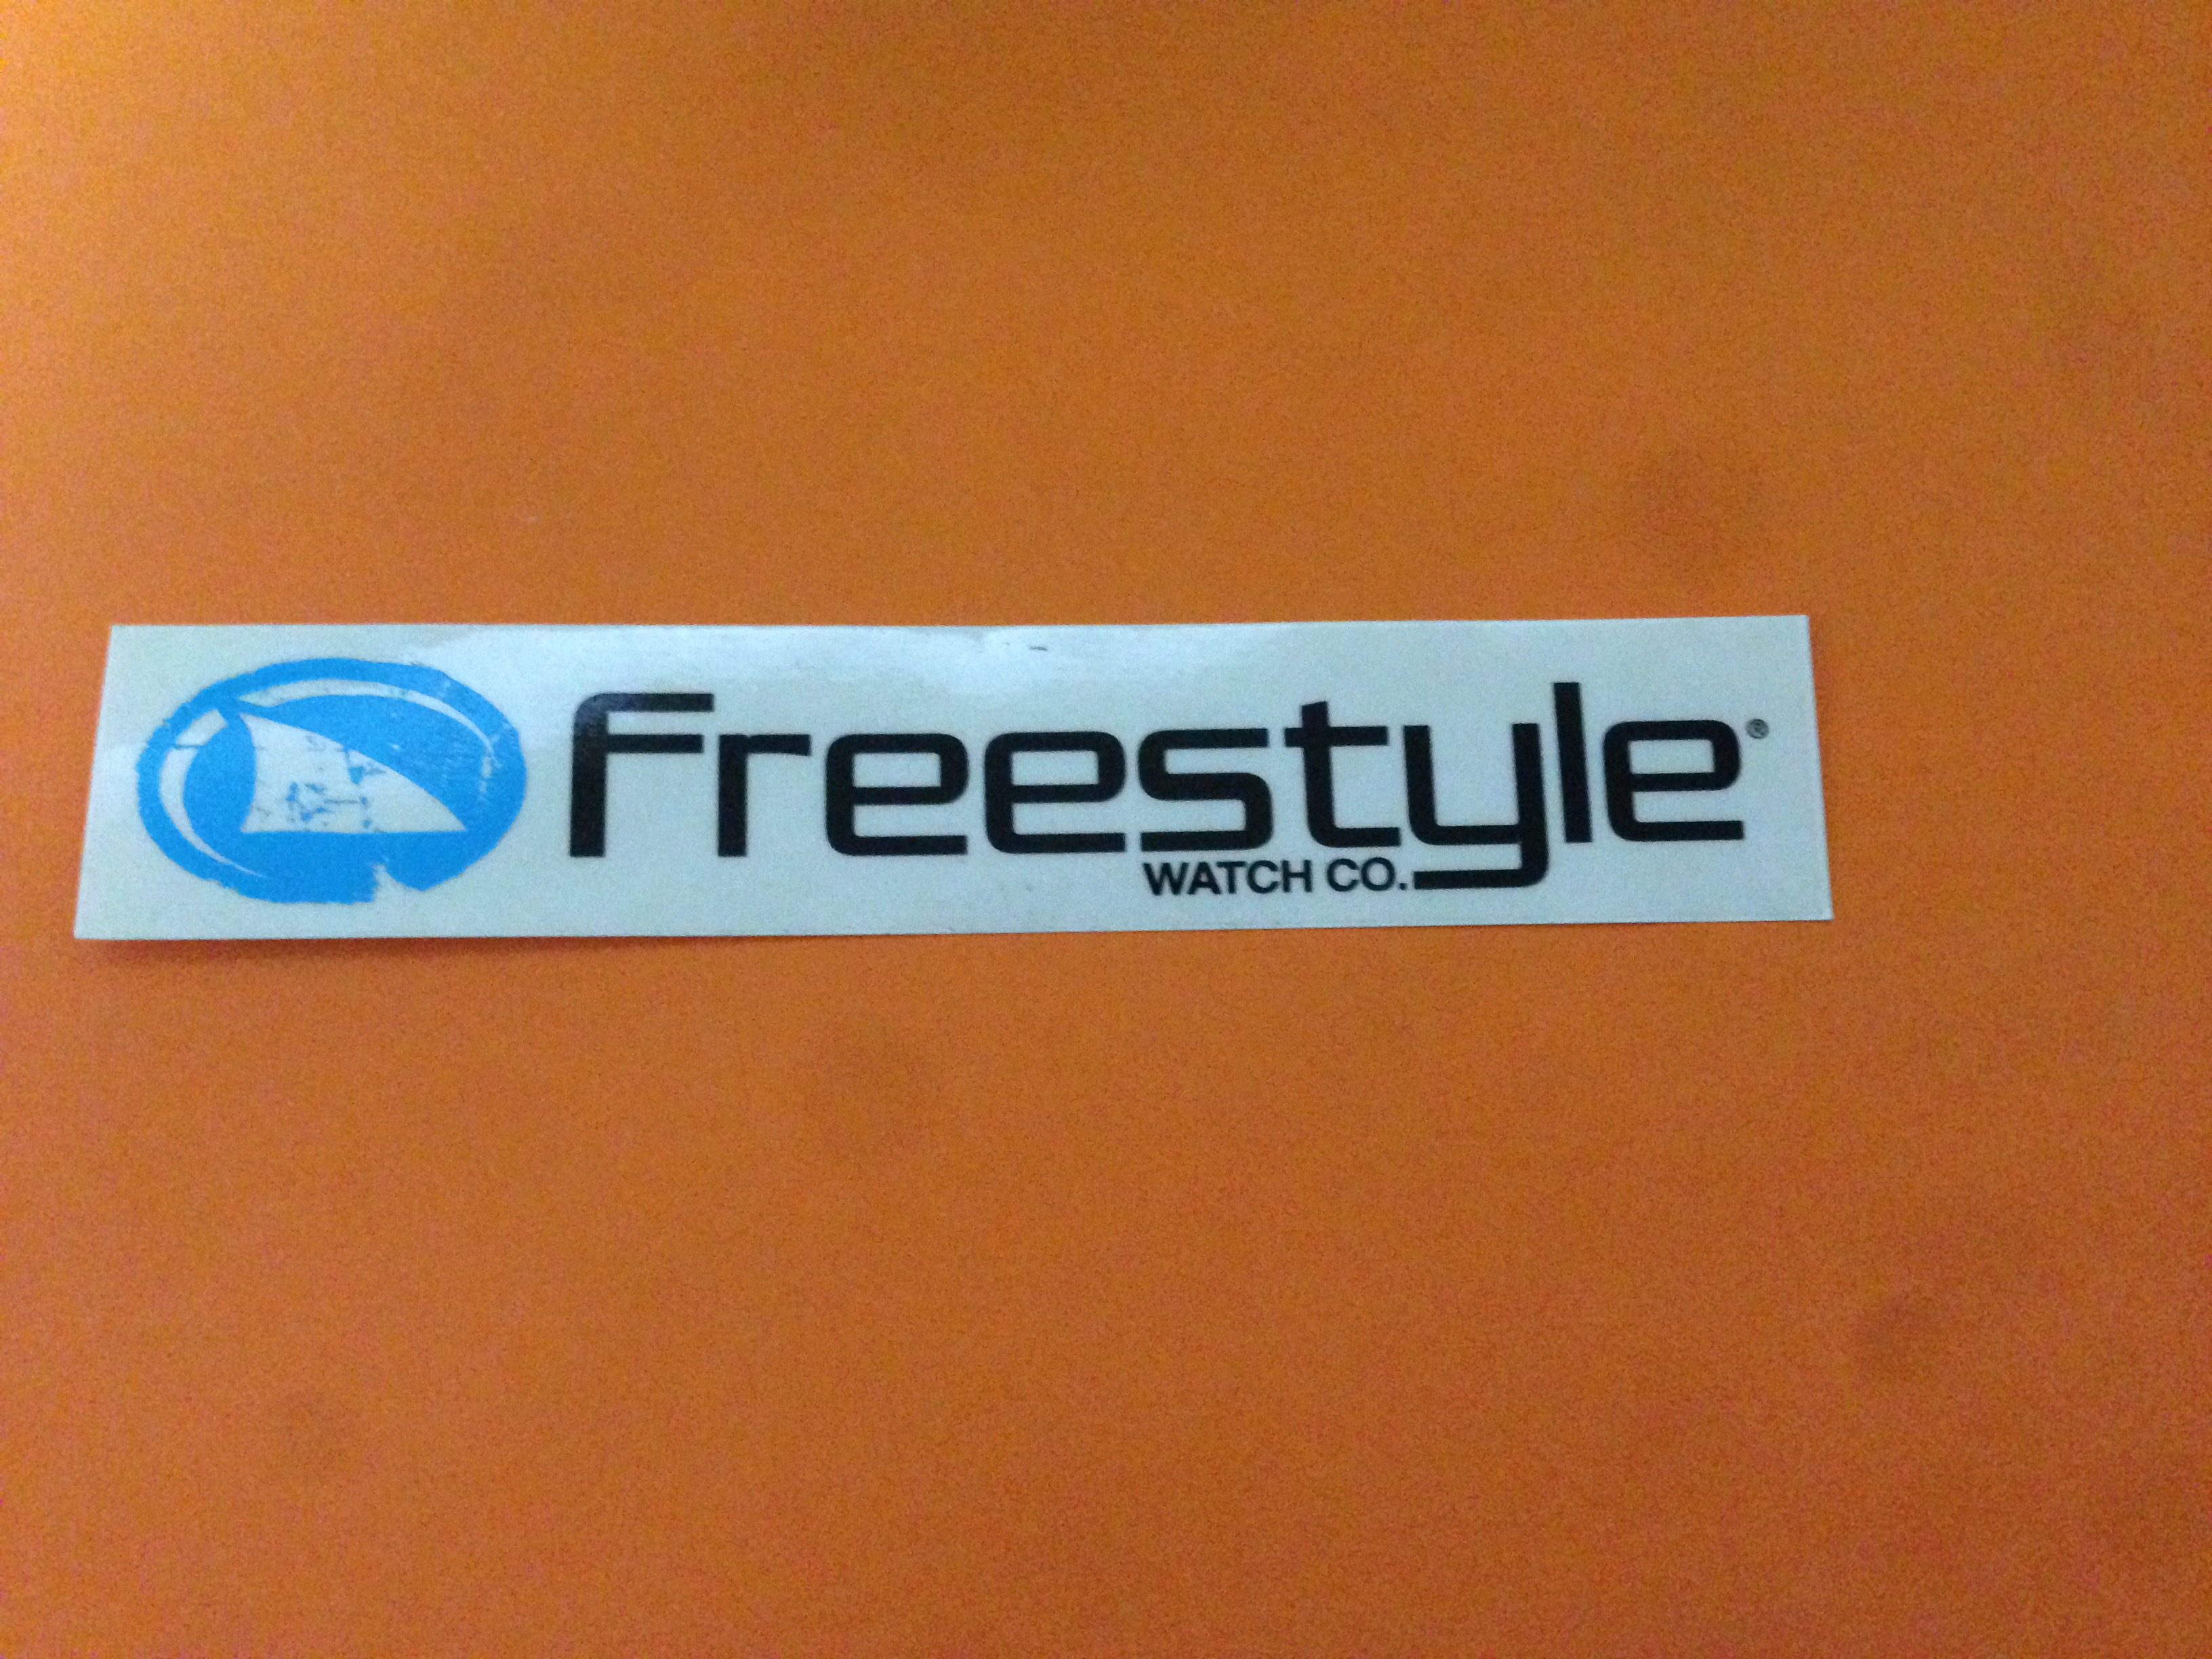 freestyle watch co černá 12x3cm